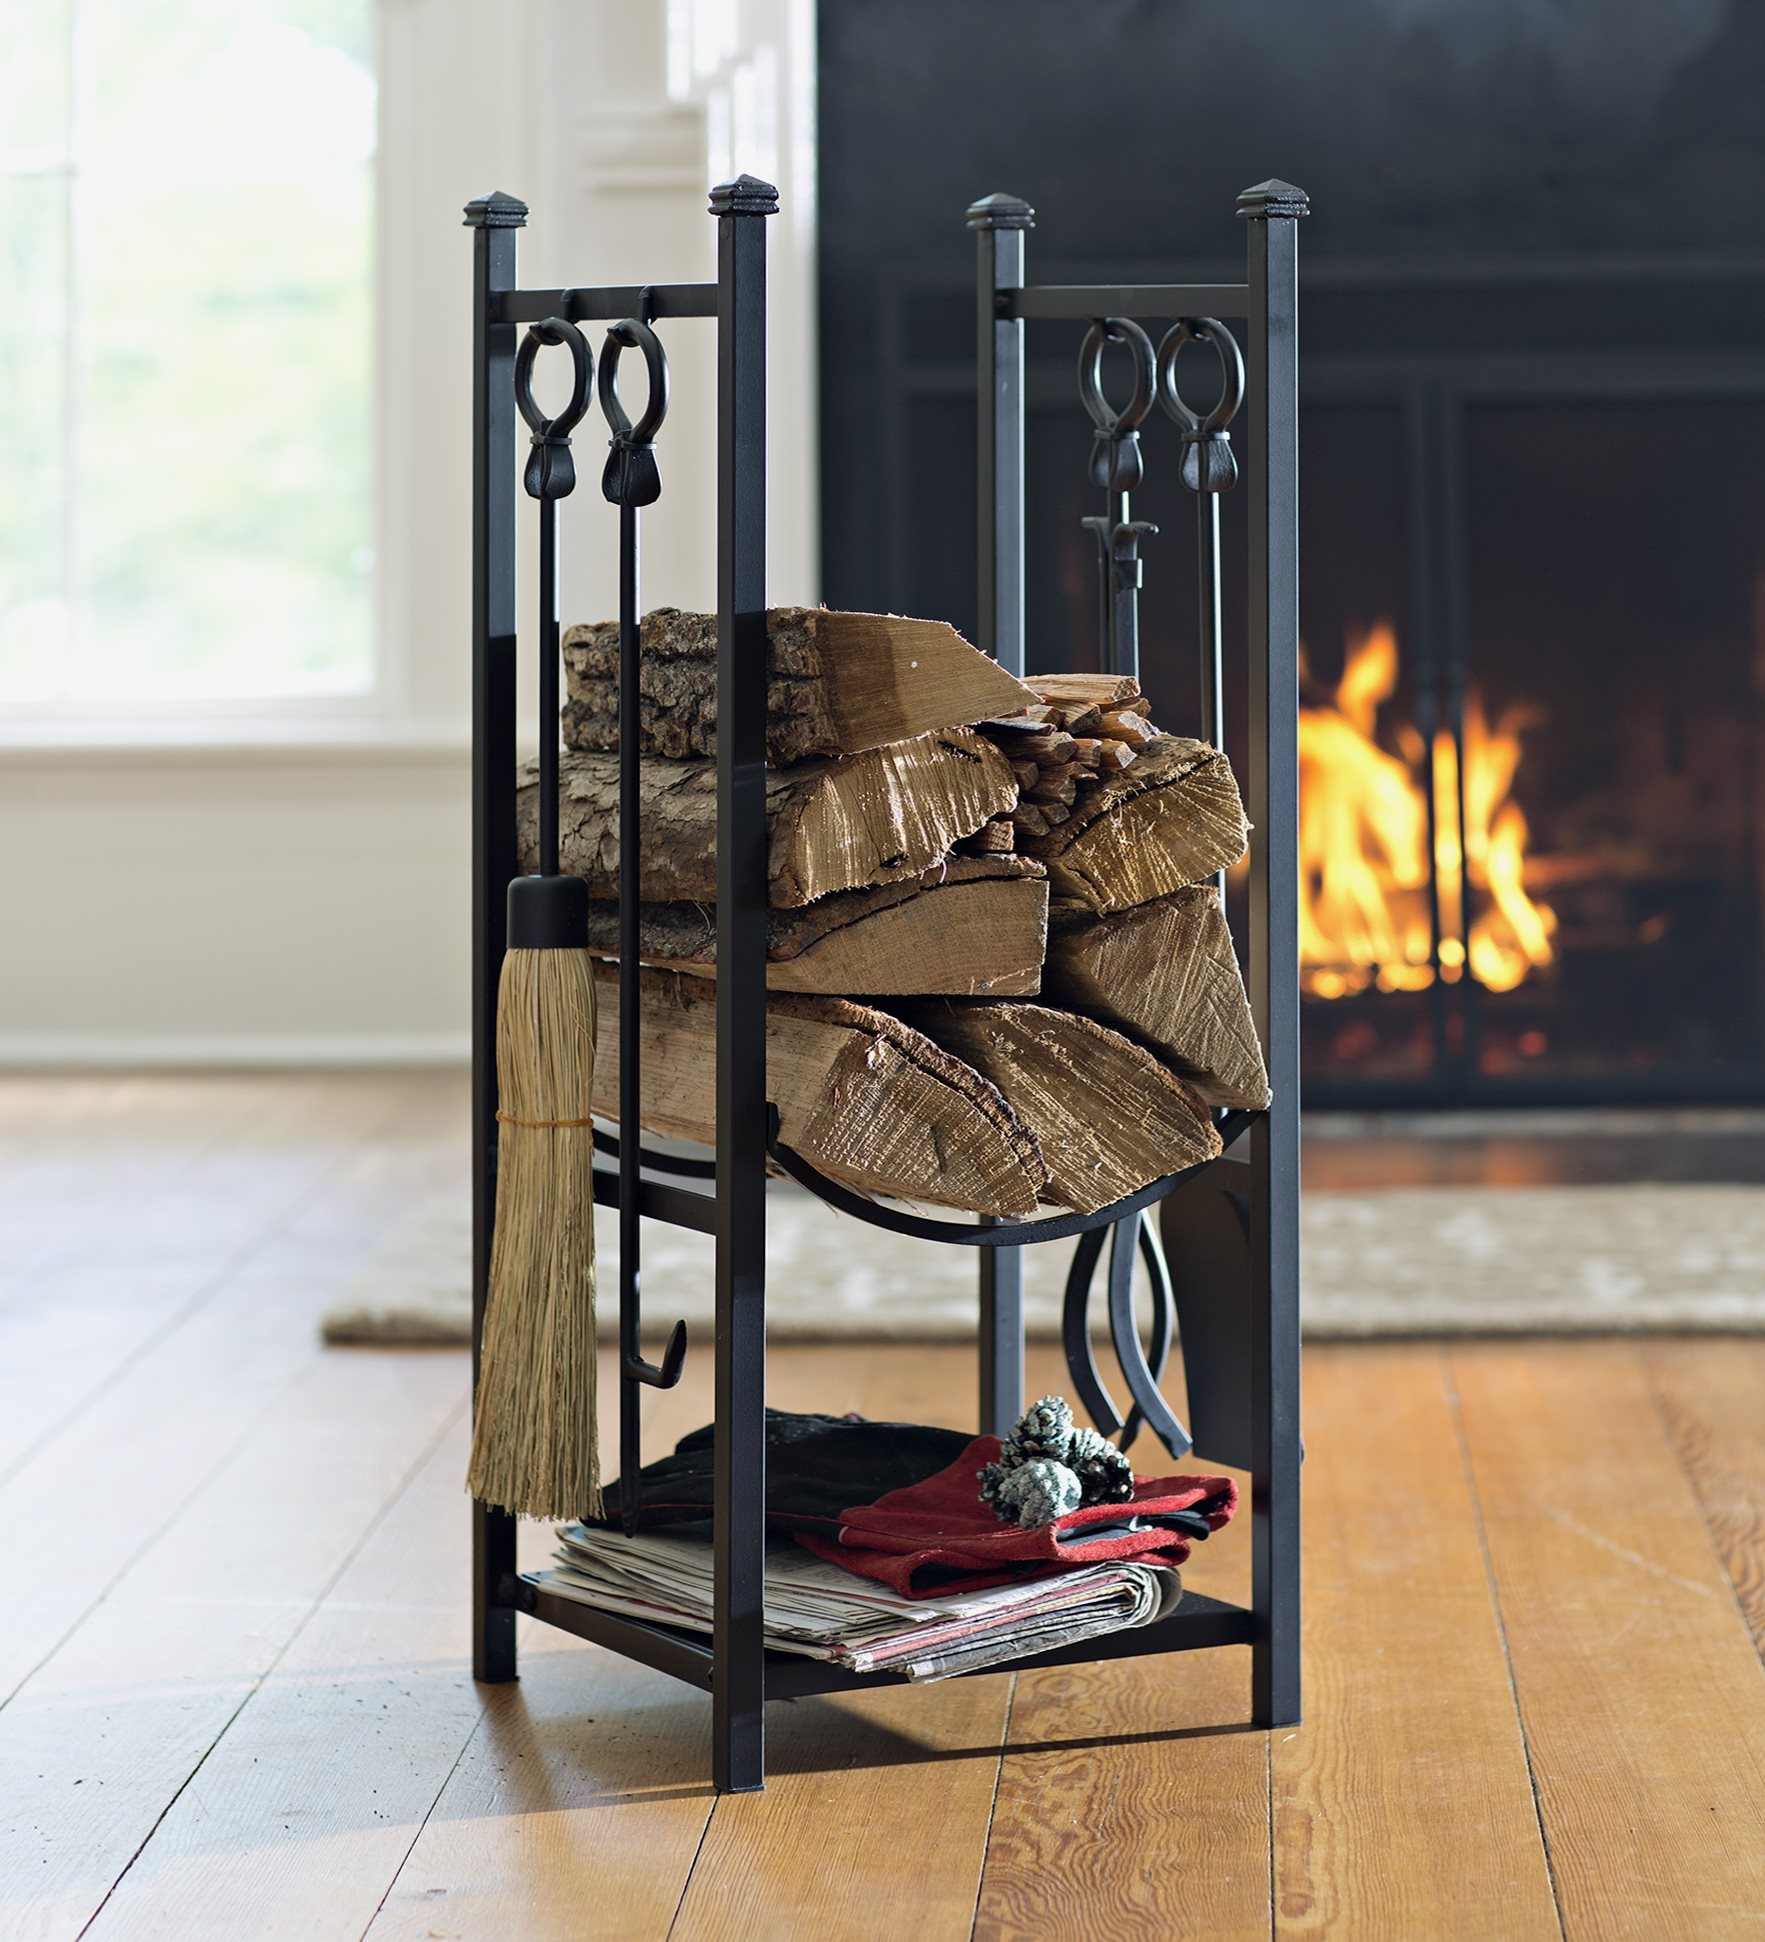 All-In-One Wood Rack w/ Fireplace Tool Set, in Black